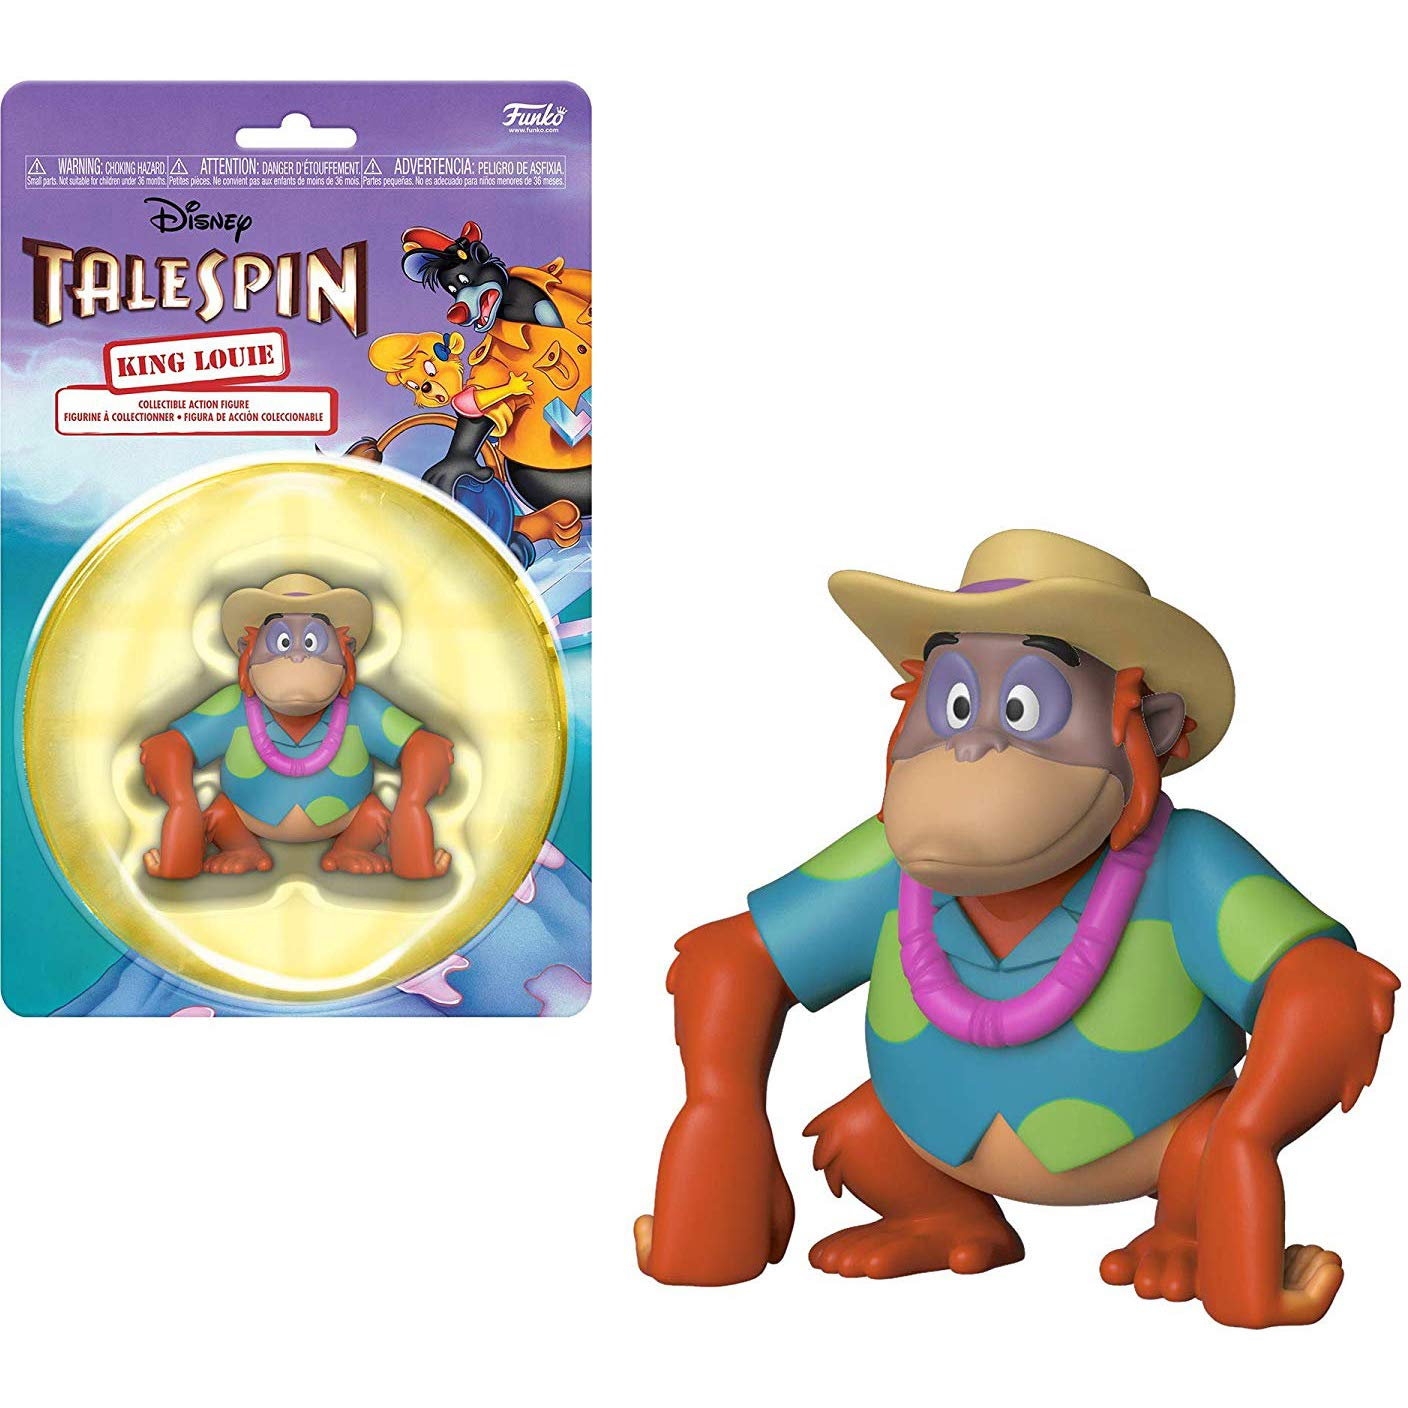 32877 King Louie ~Talespin~ x Funko The Disney Afternoon Mini Action Figure 1 Classic Disney Trading Card Bundle